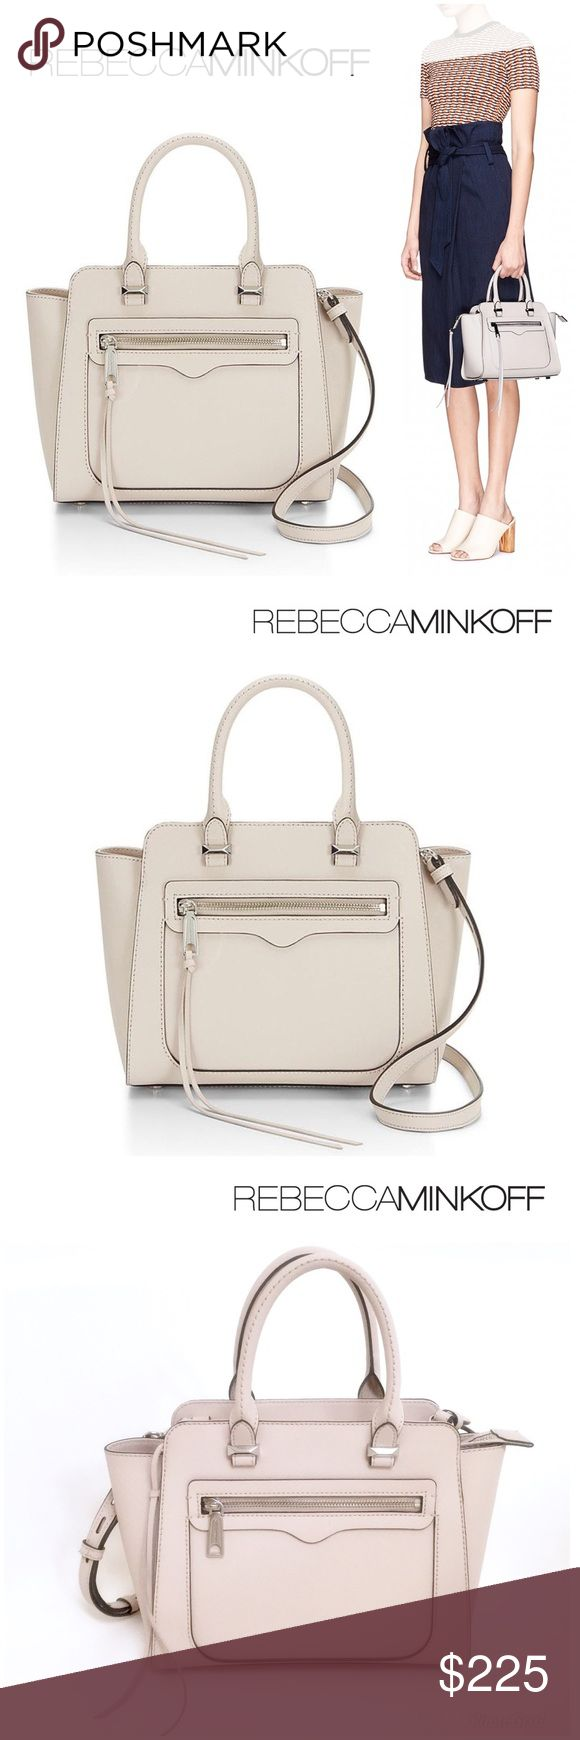 """Rebecca Minkoff Saffiano Leather Satchel Brand new with product tags, care booklet and card. Price sticker is off. Structured genuine saffiano leather brings a sophisticated finish to a mid-sized Rebecca Minkoff satchel. Details-- Genuine saffiano leather; 22"""" adjustable/ detachable shoulder strap; double rolled handles with 4"""" drop; Custom silver hardware; nameplate on back; metal feet on bottom (slight scuffs noted in picture 7); long pull on zipper; top zip closure; interior: 1 zip & 3…"""